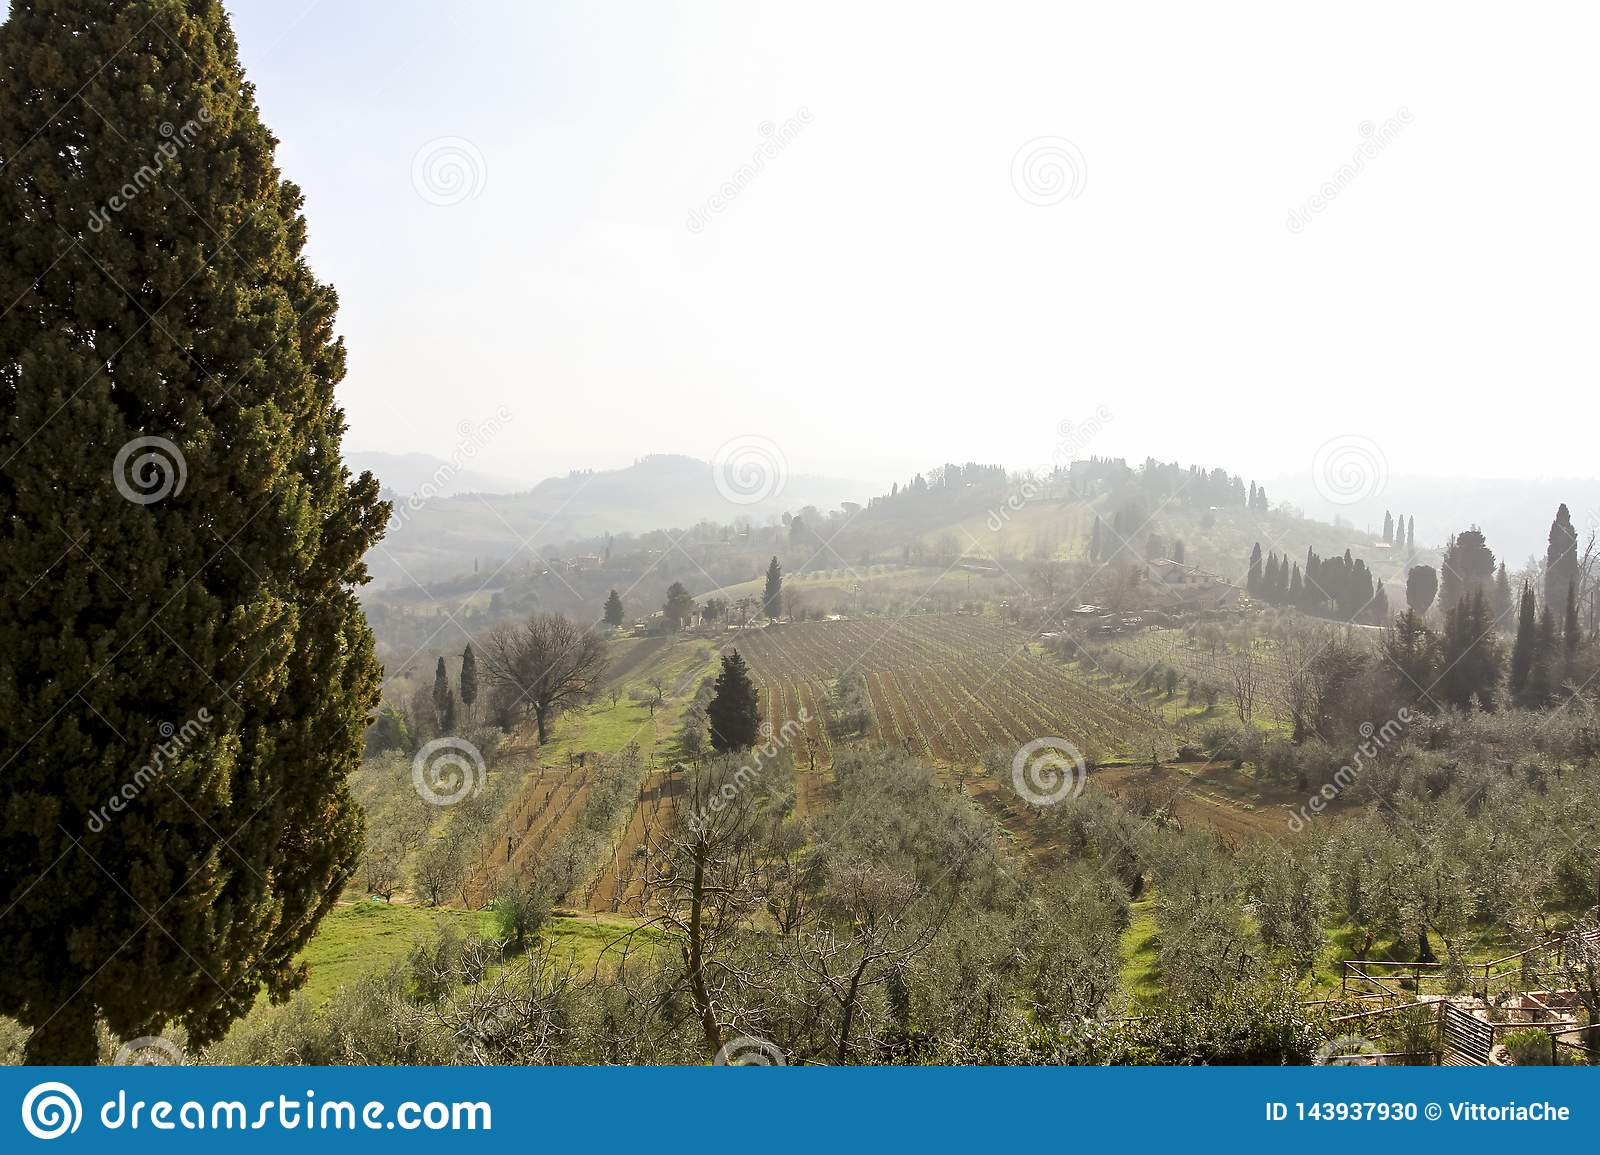 Early foggy morning. Beautiful spring landscape in Tuscany, Italy, Europe